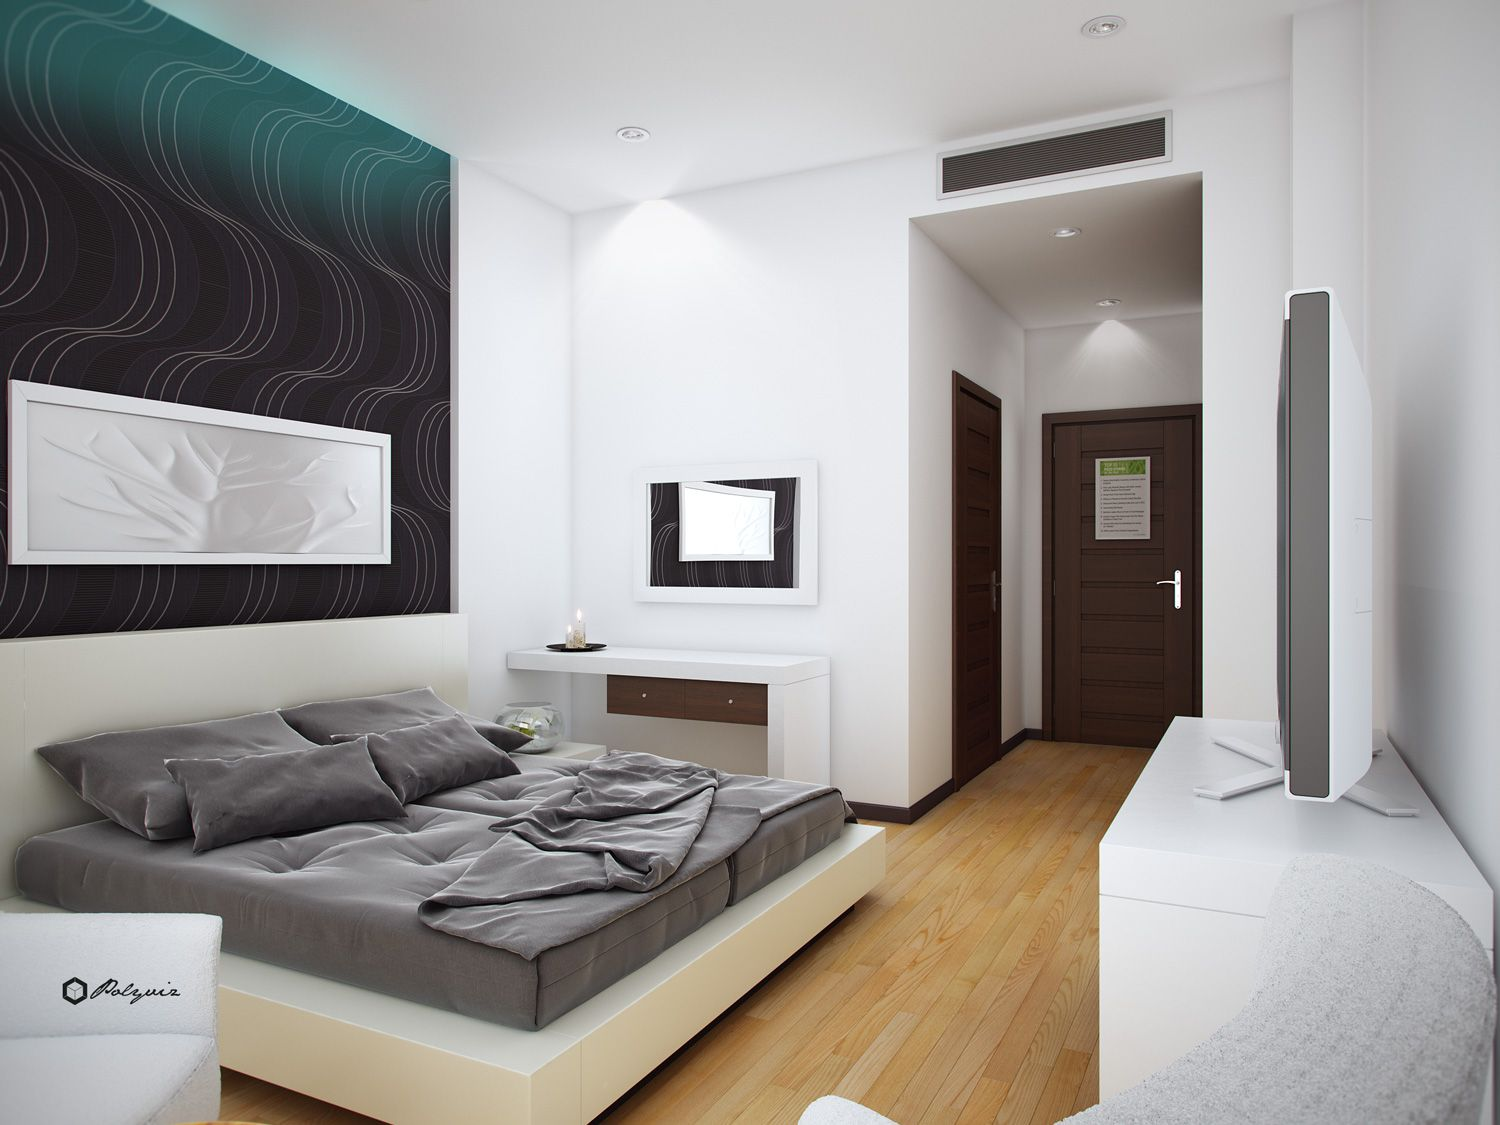 Modern hotel room design google search room design for Hotel bedroom designs